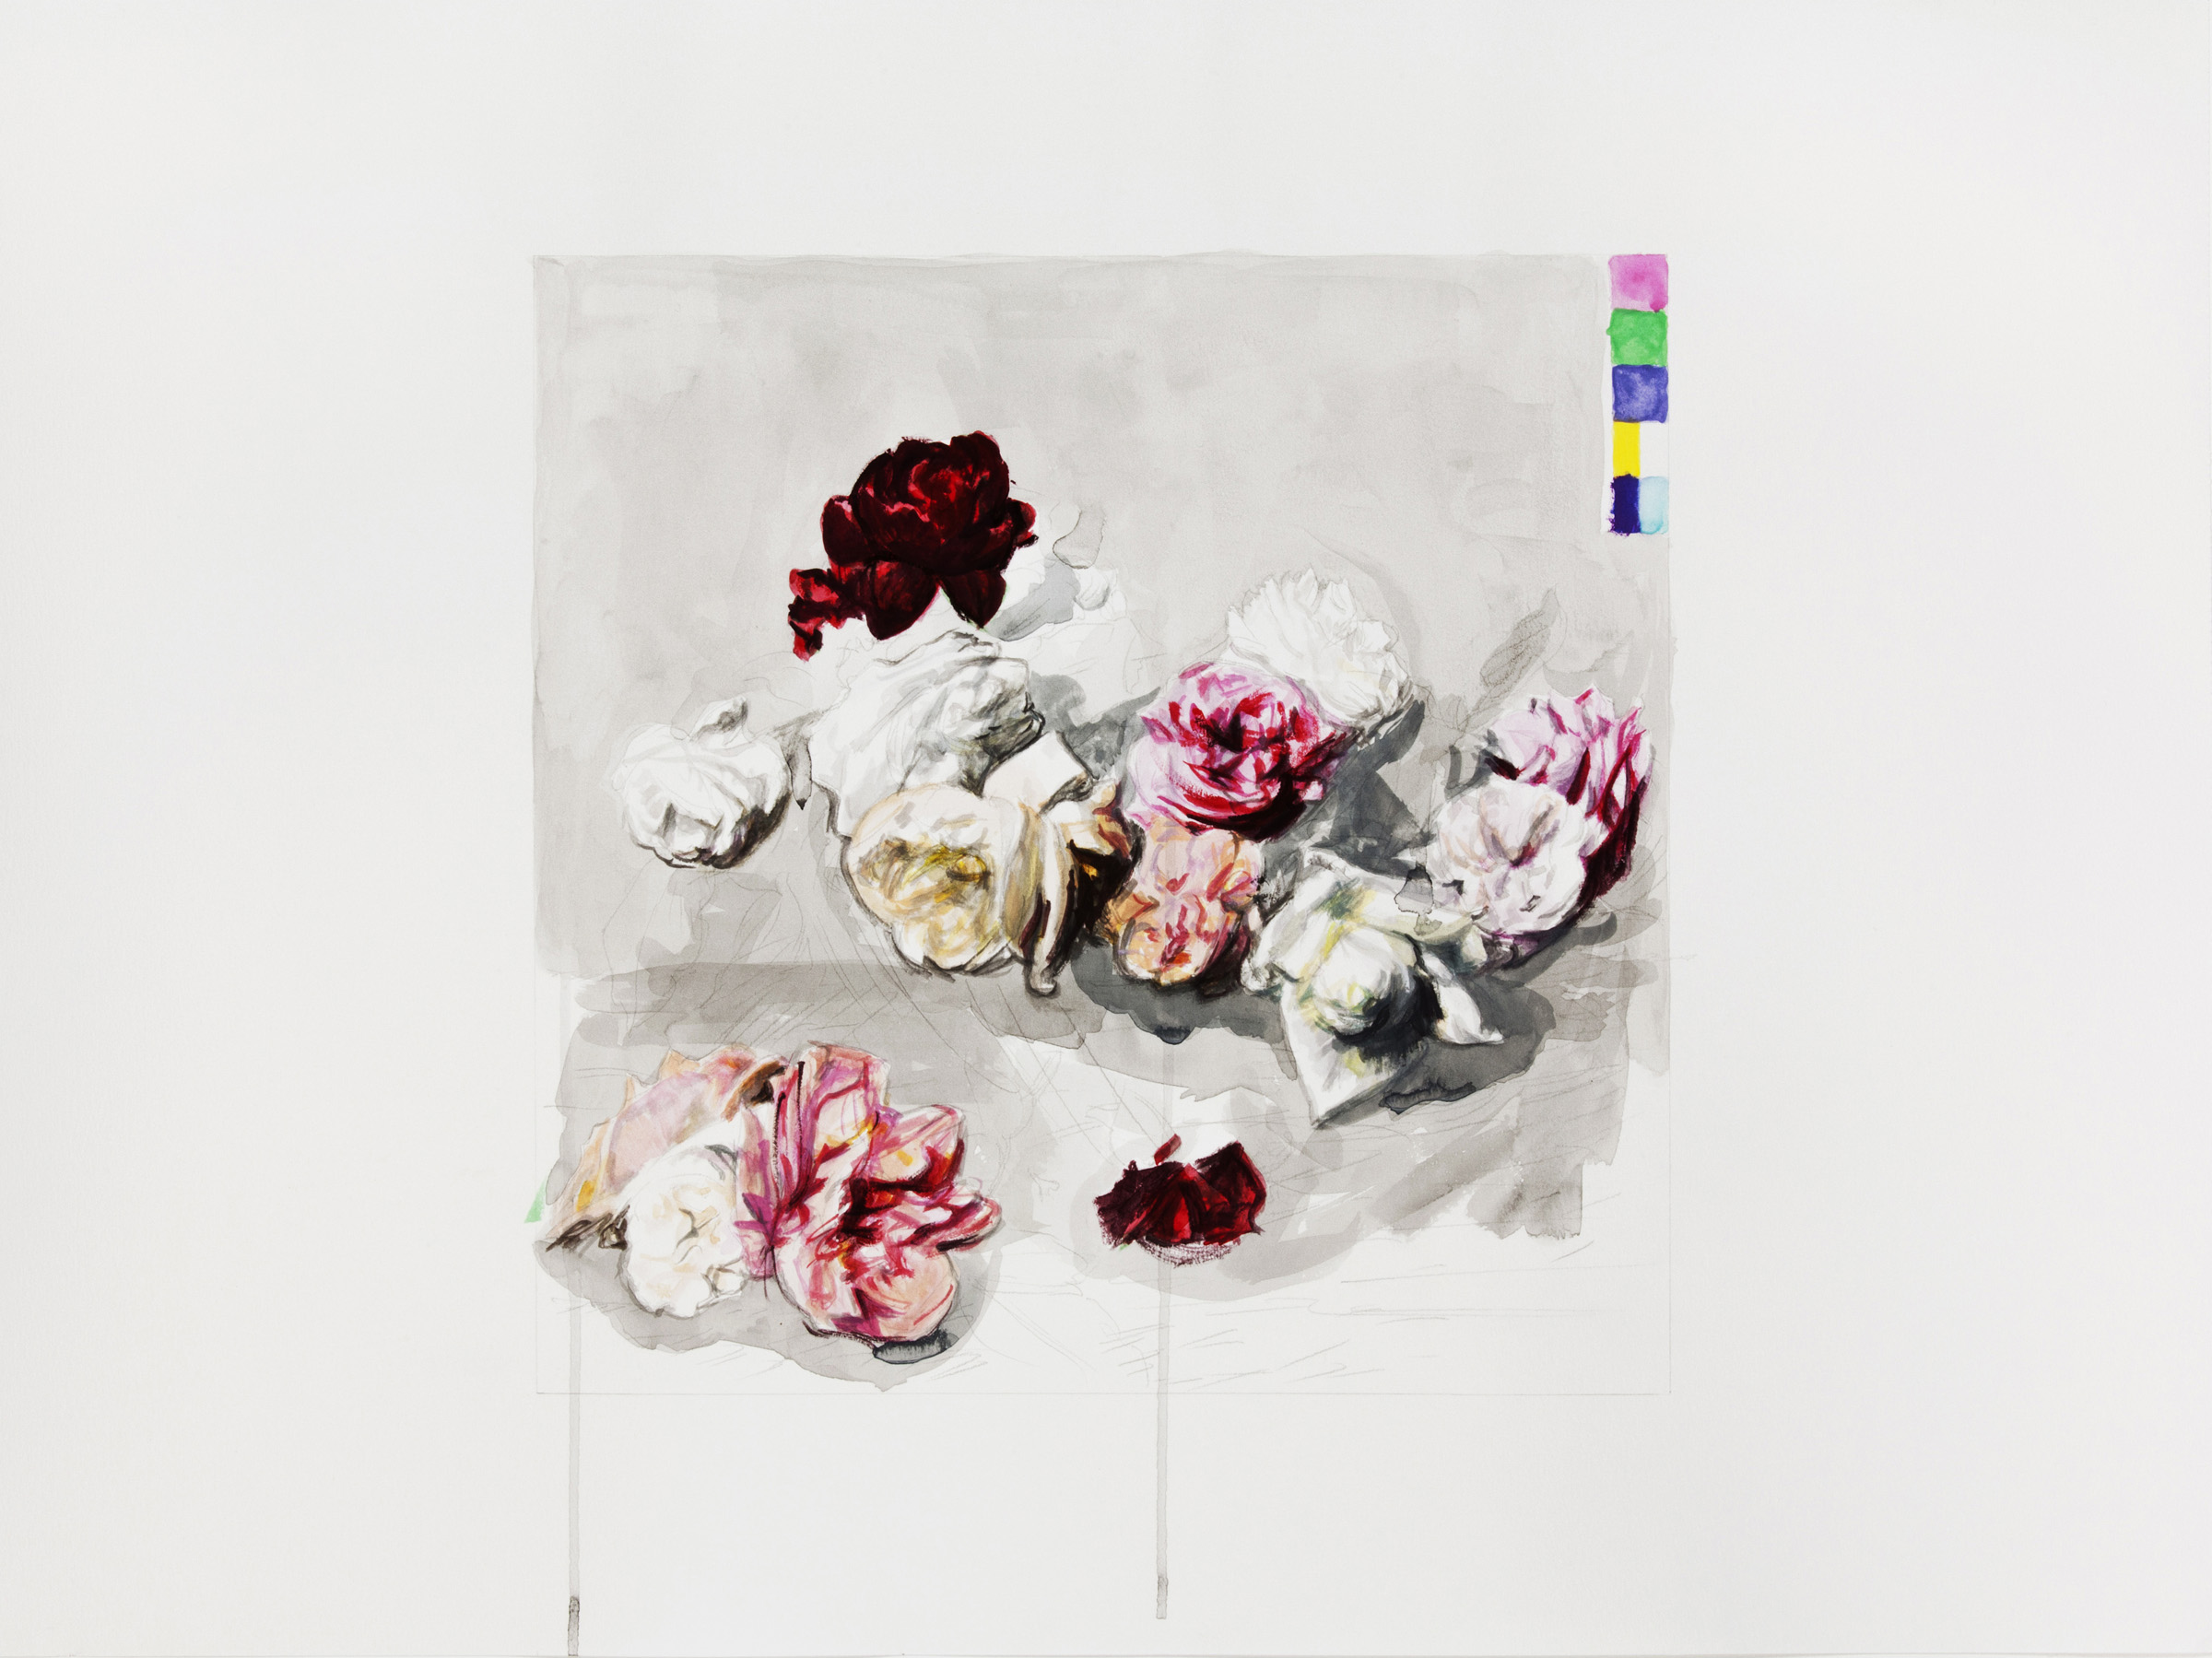 Power Corruption and Lies #16